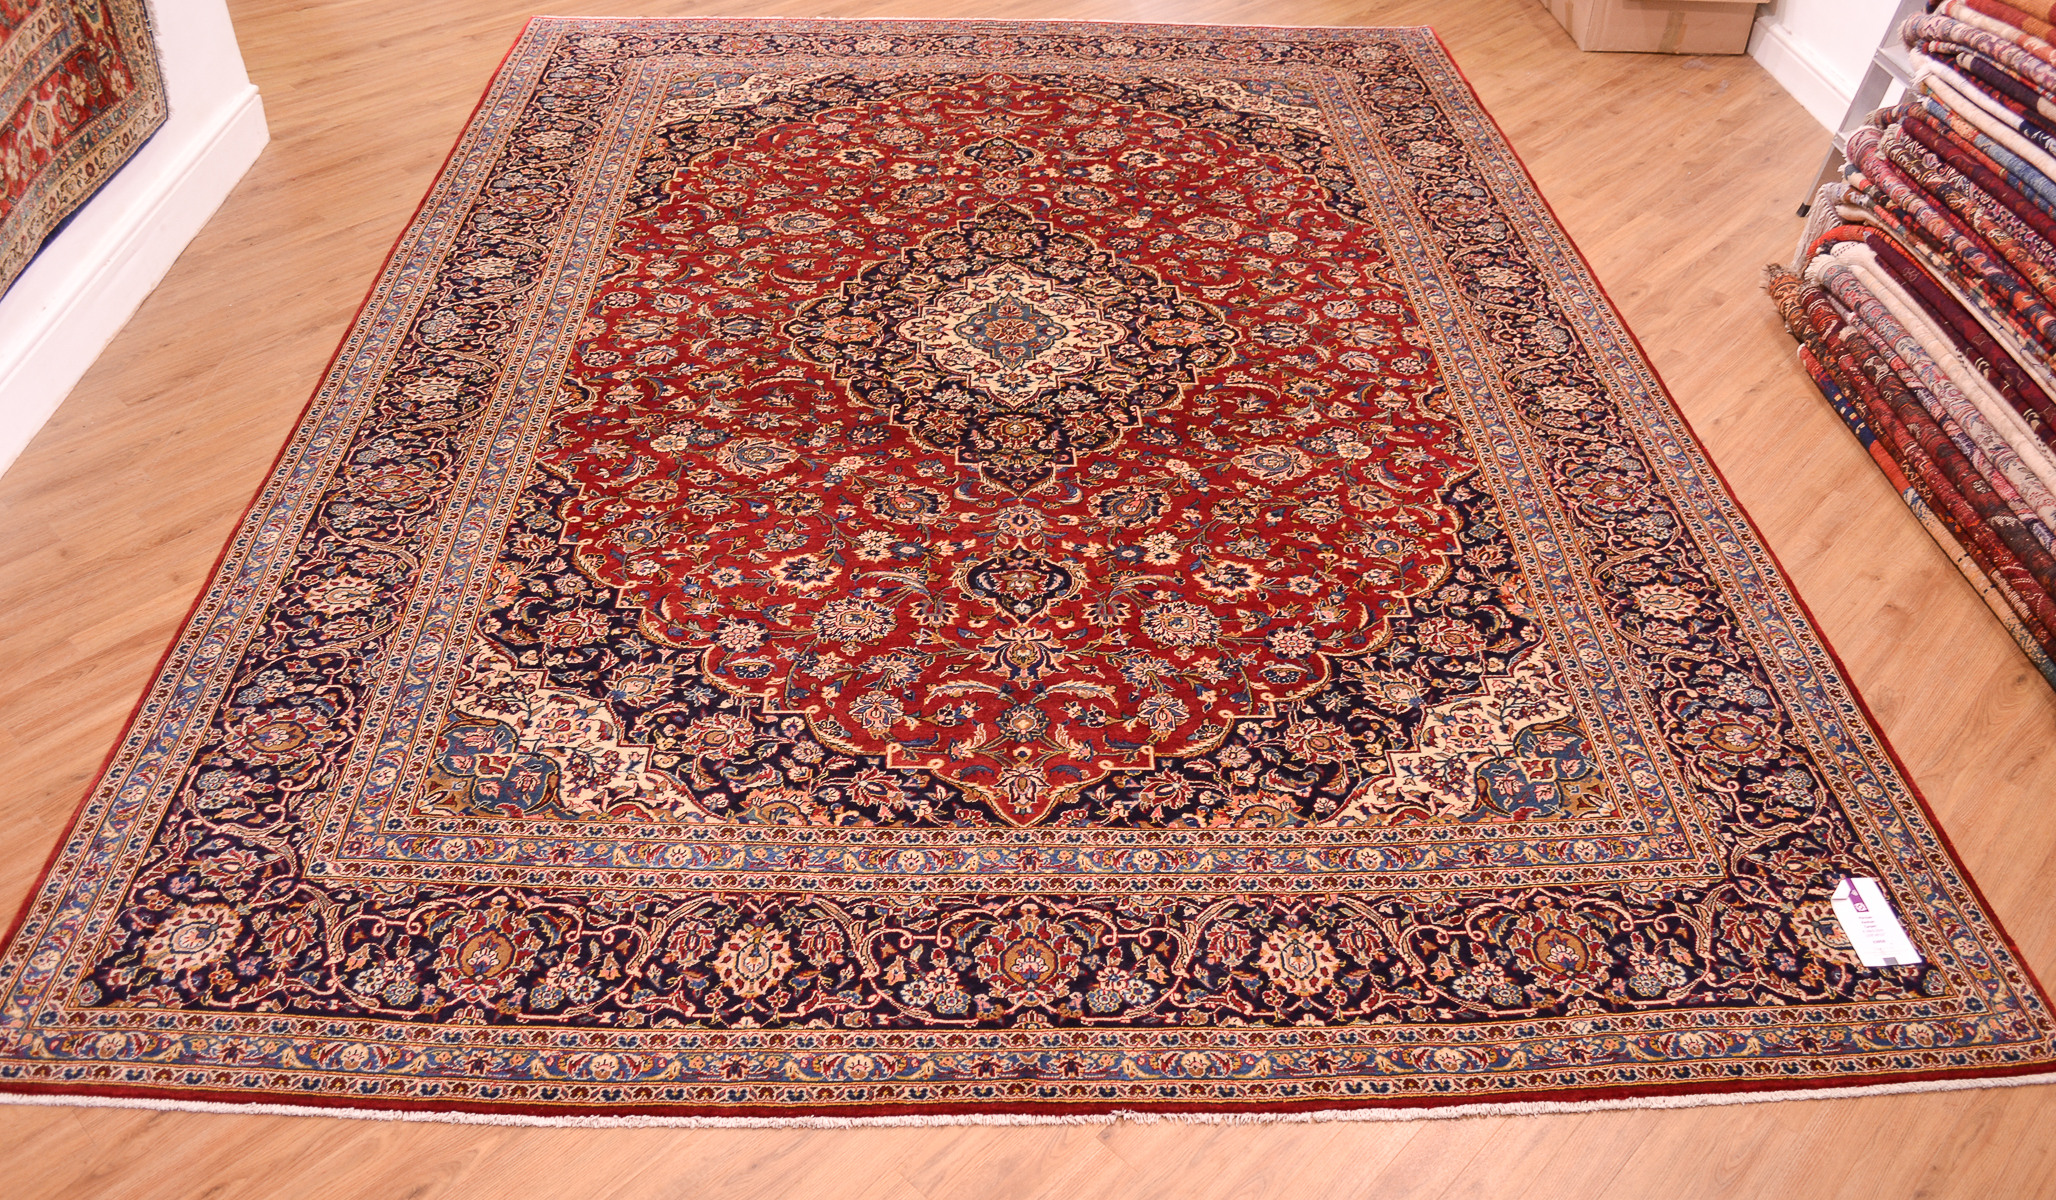 Persian Kashan Carpet 4 18x3 02m The Oriental Rug Merchant